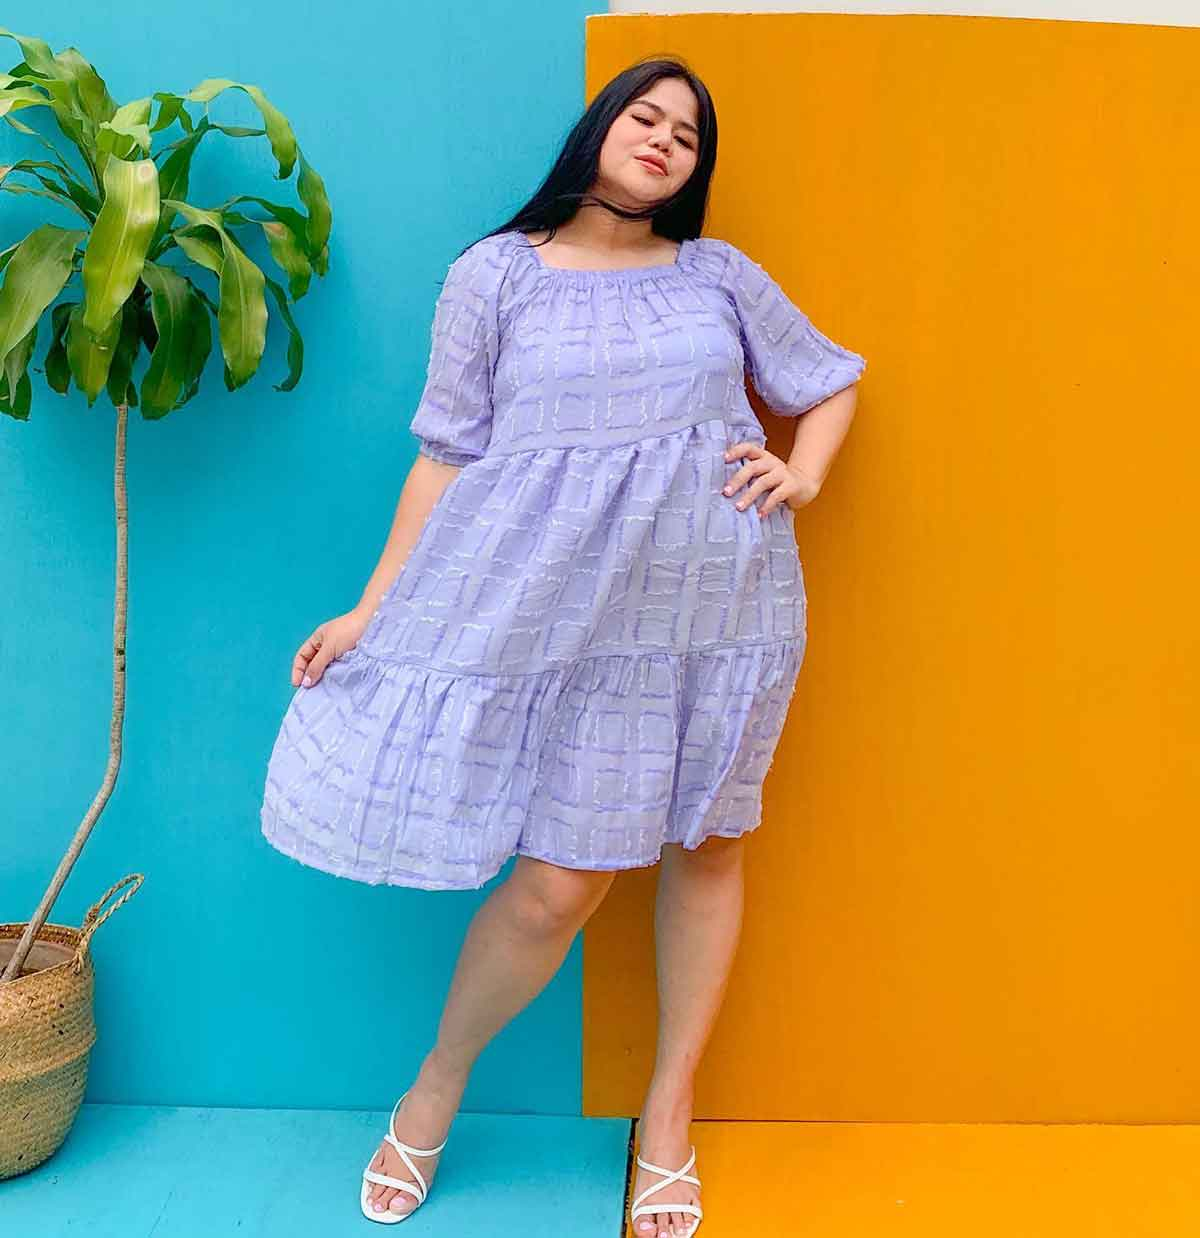 FreebieMNL - Plus-Size Brands for the Everyday Woman